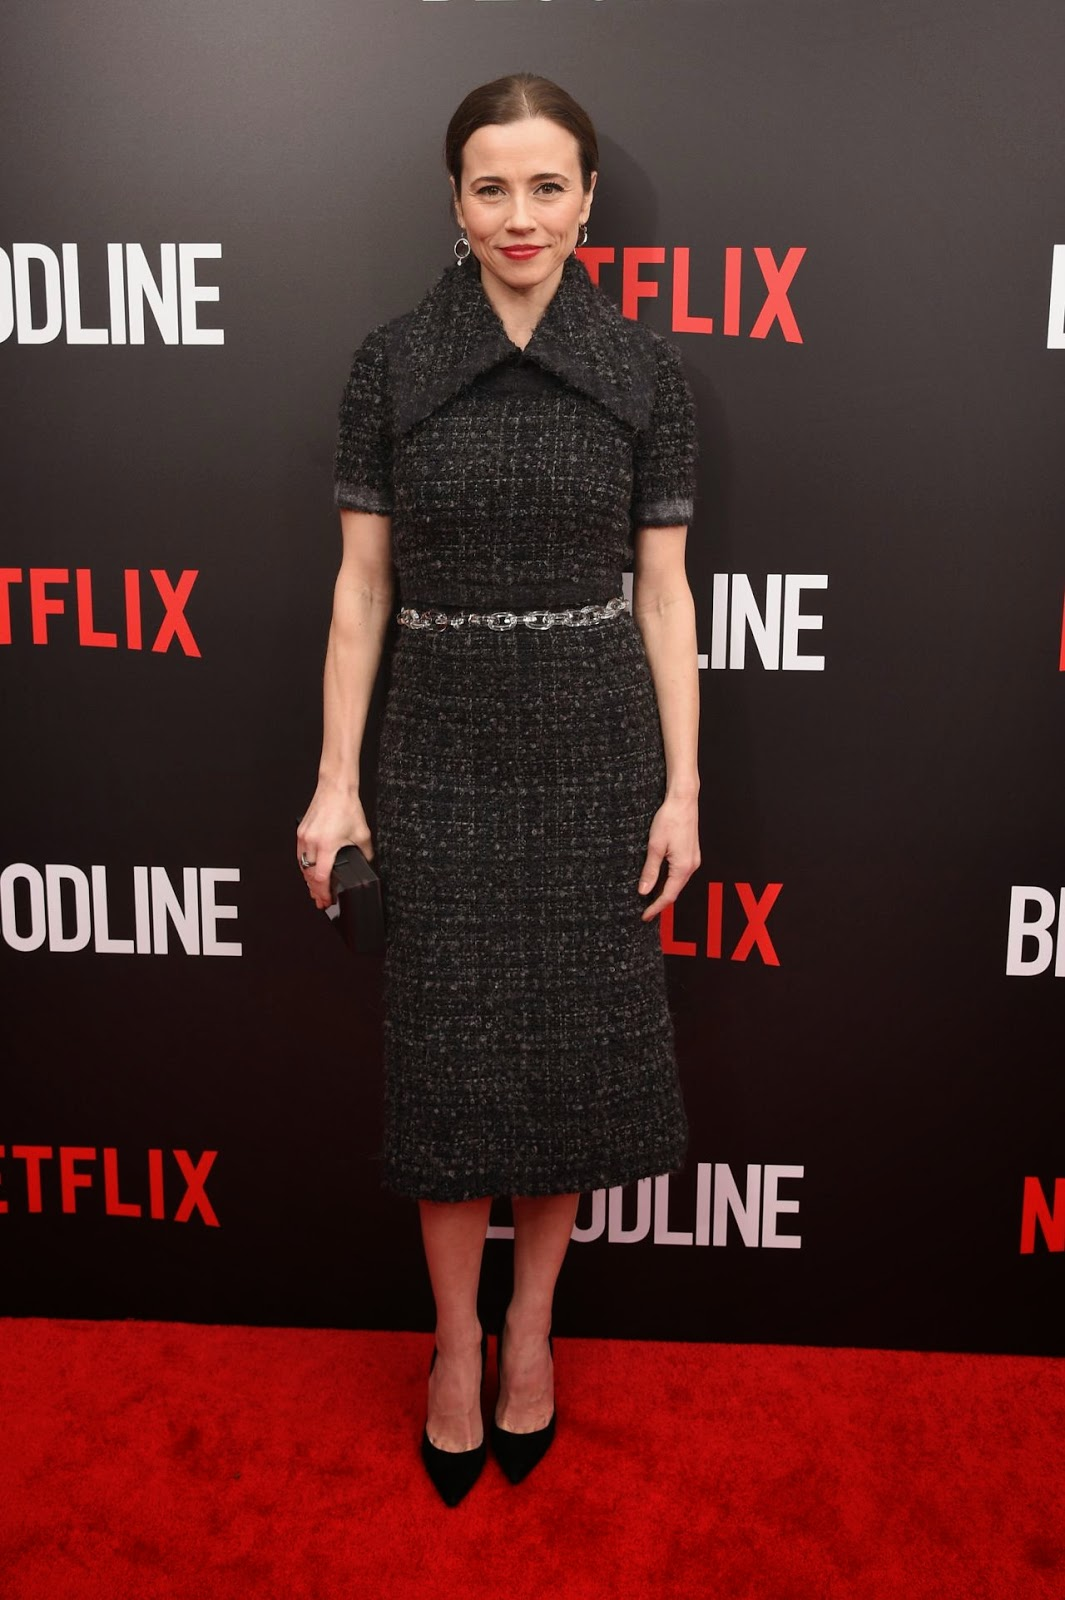 Actress @ Linda Cardellini - 'Bloodline' New York Series Premiere in NYC